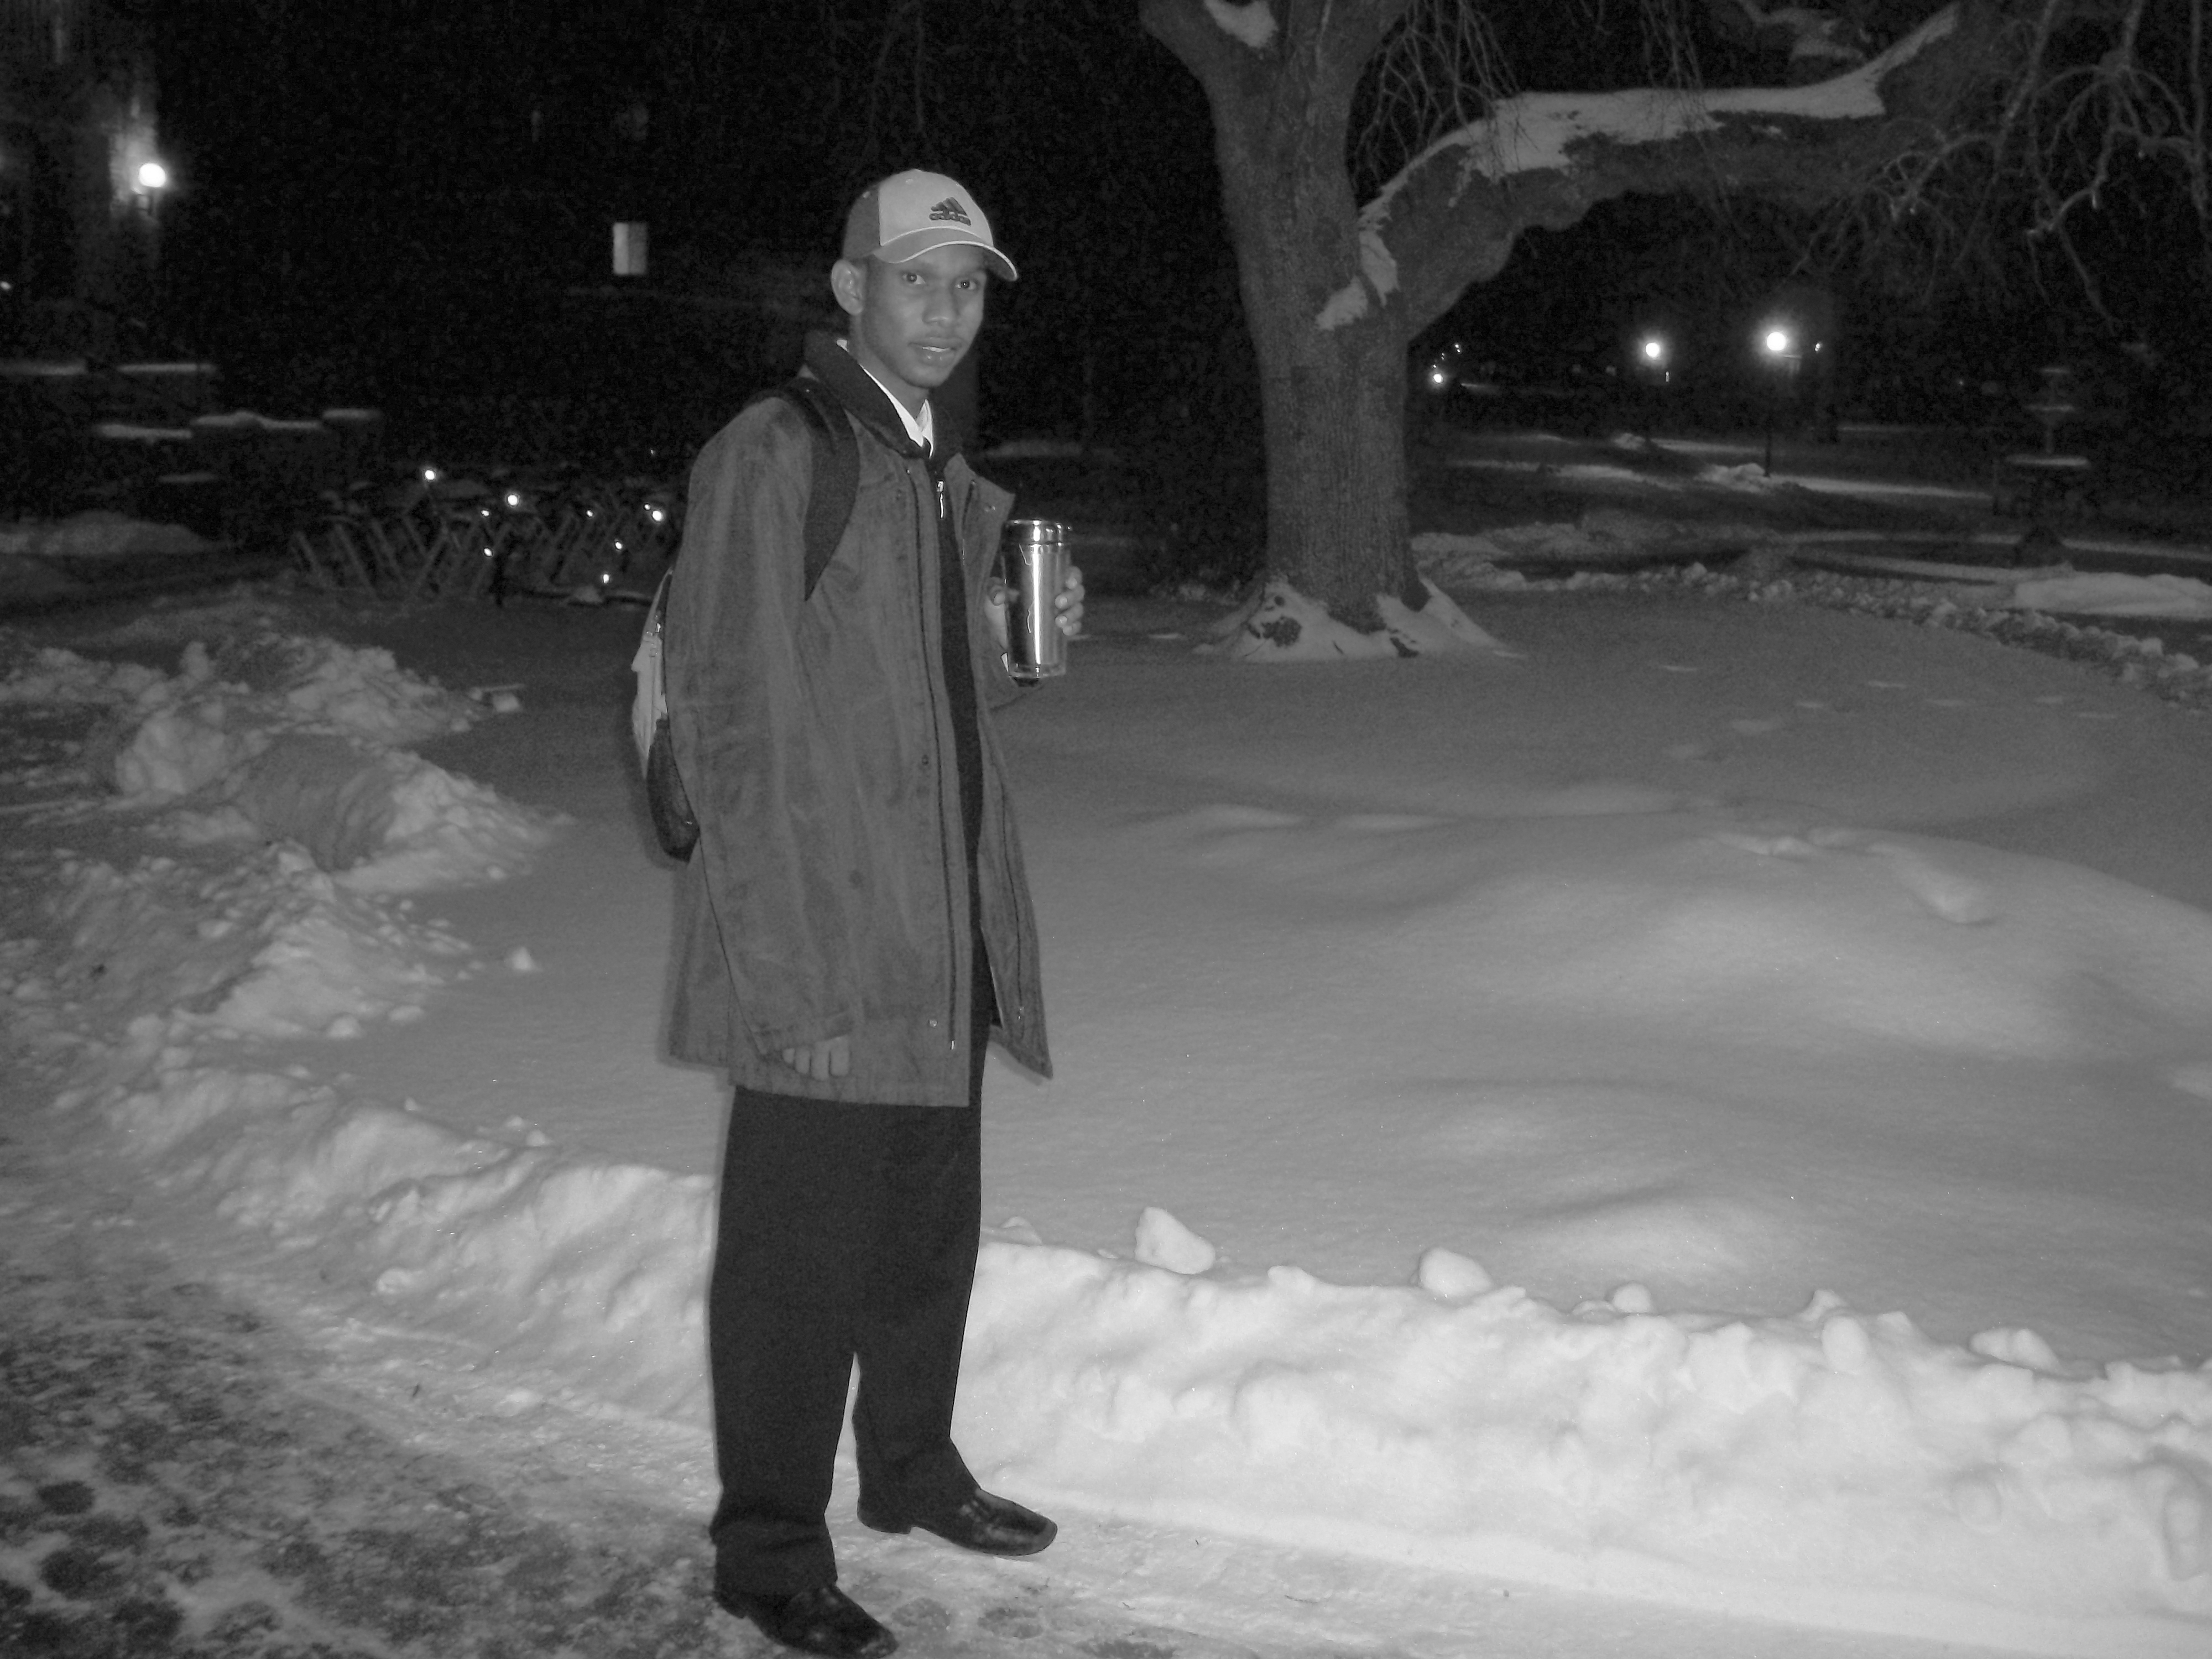 Mohamed Yarba Meissara stands on a snow-plowed path